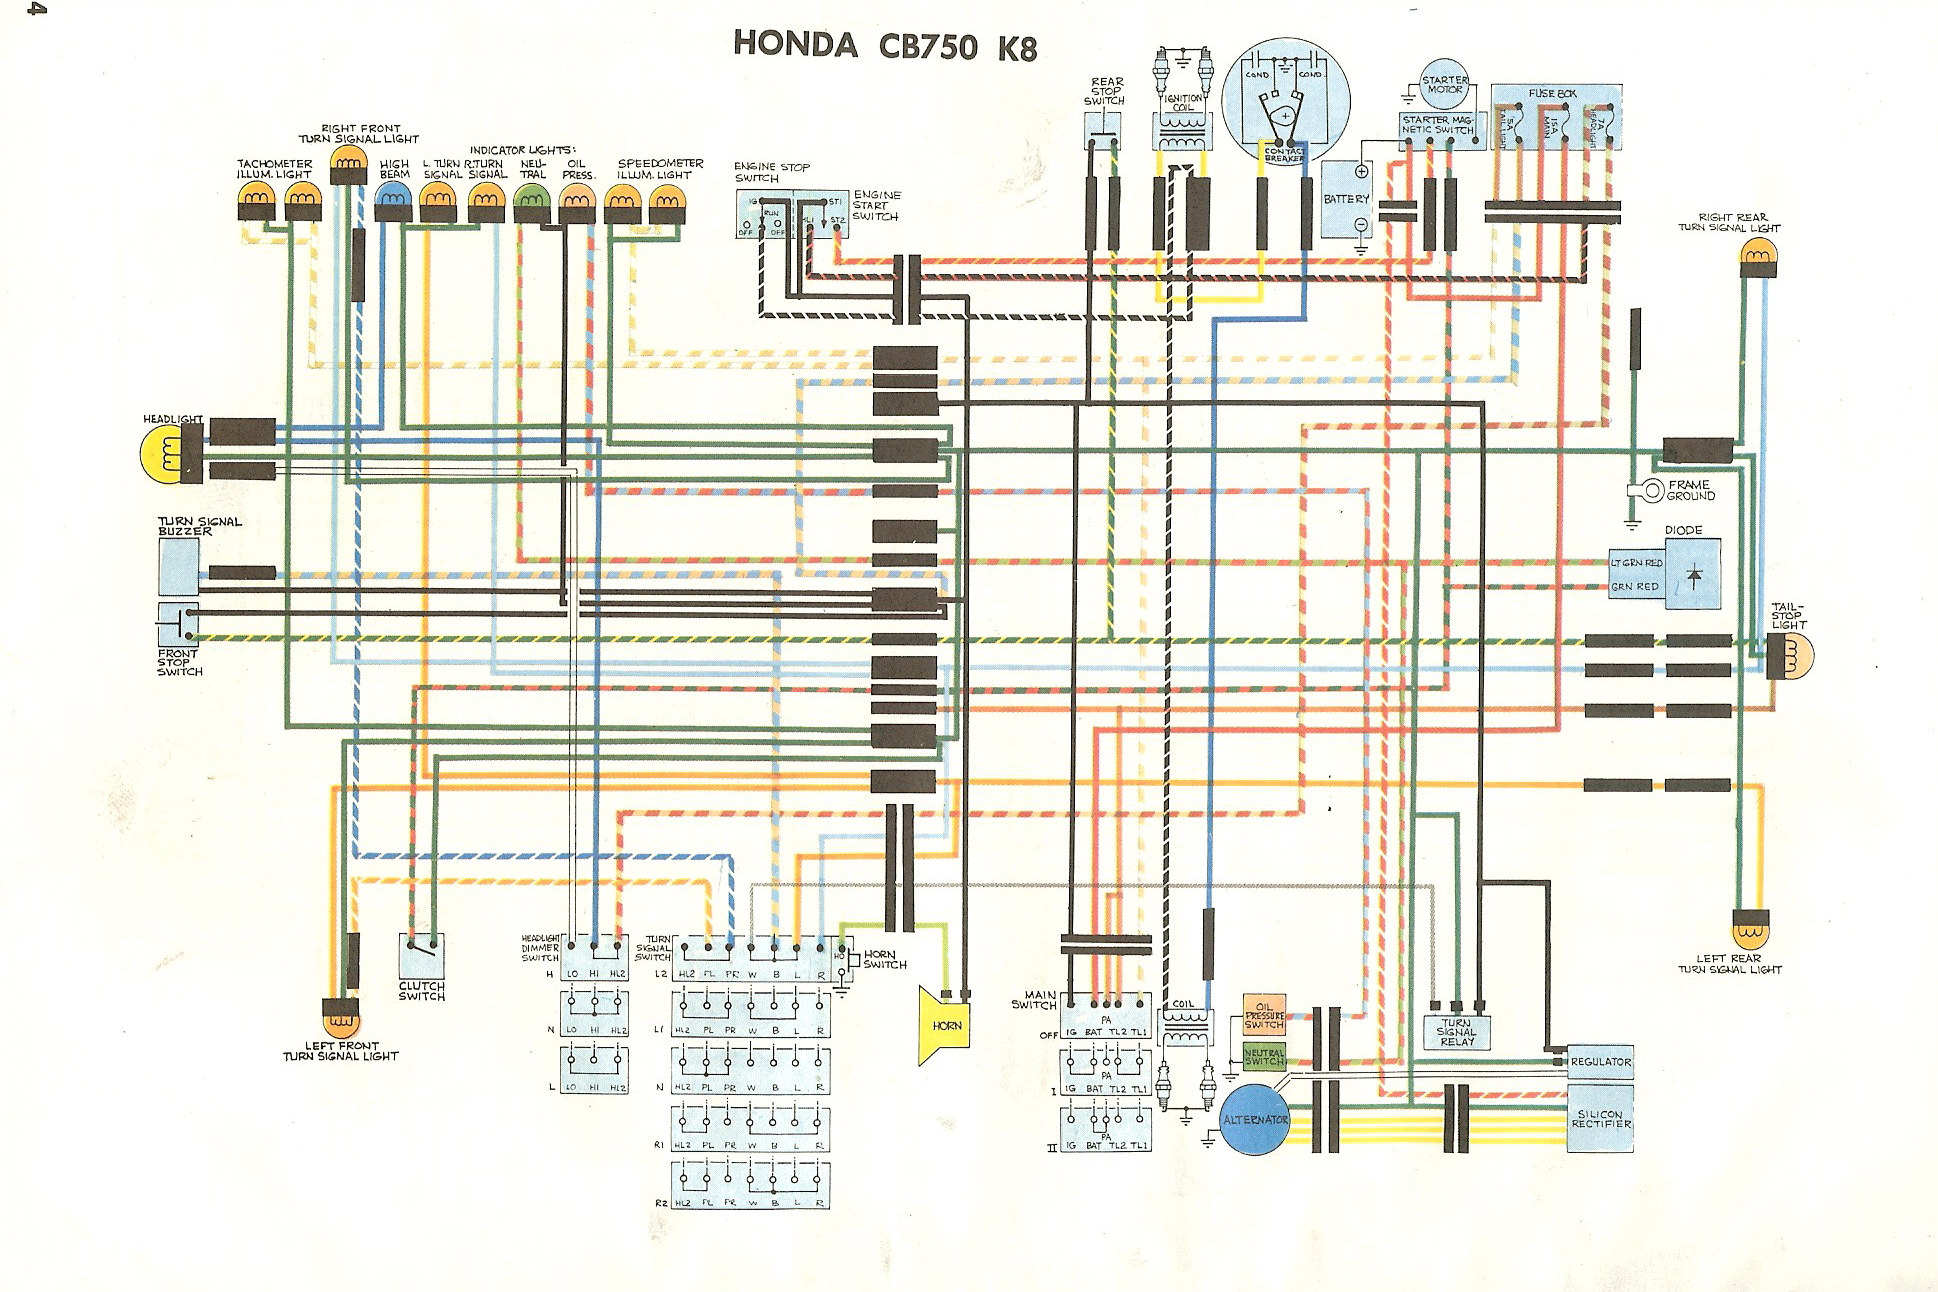 WD750K8 1978 honda cb750 wiring diagram honda cb 700 ignition wire diagram 1976 cb550f wiring diagram at alyssarenee.co